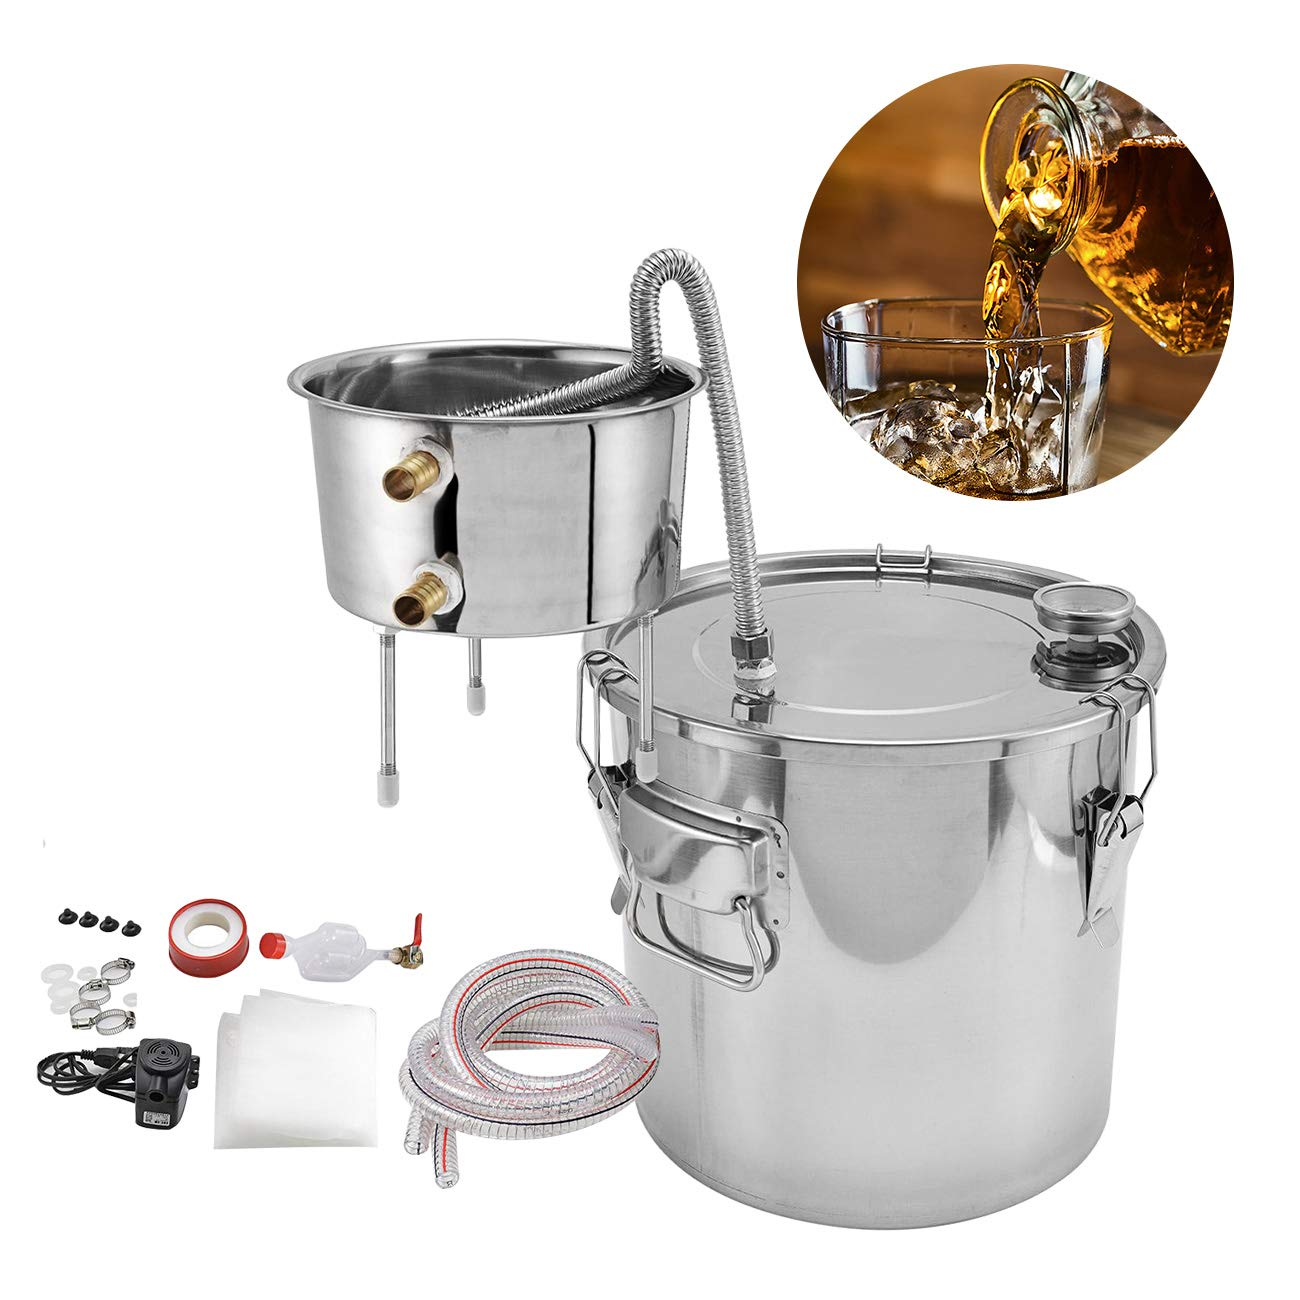 BEAMNOVA Moonshine Still Complete Kit 5.81 Gallon Stainless Steel Thermometer Water Pump Spirits Alcohol Water Distiller Essential Oils Hydrolat Maker